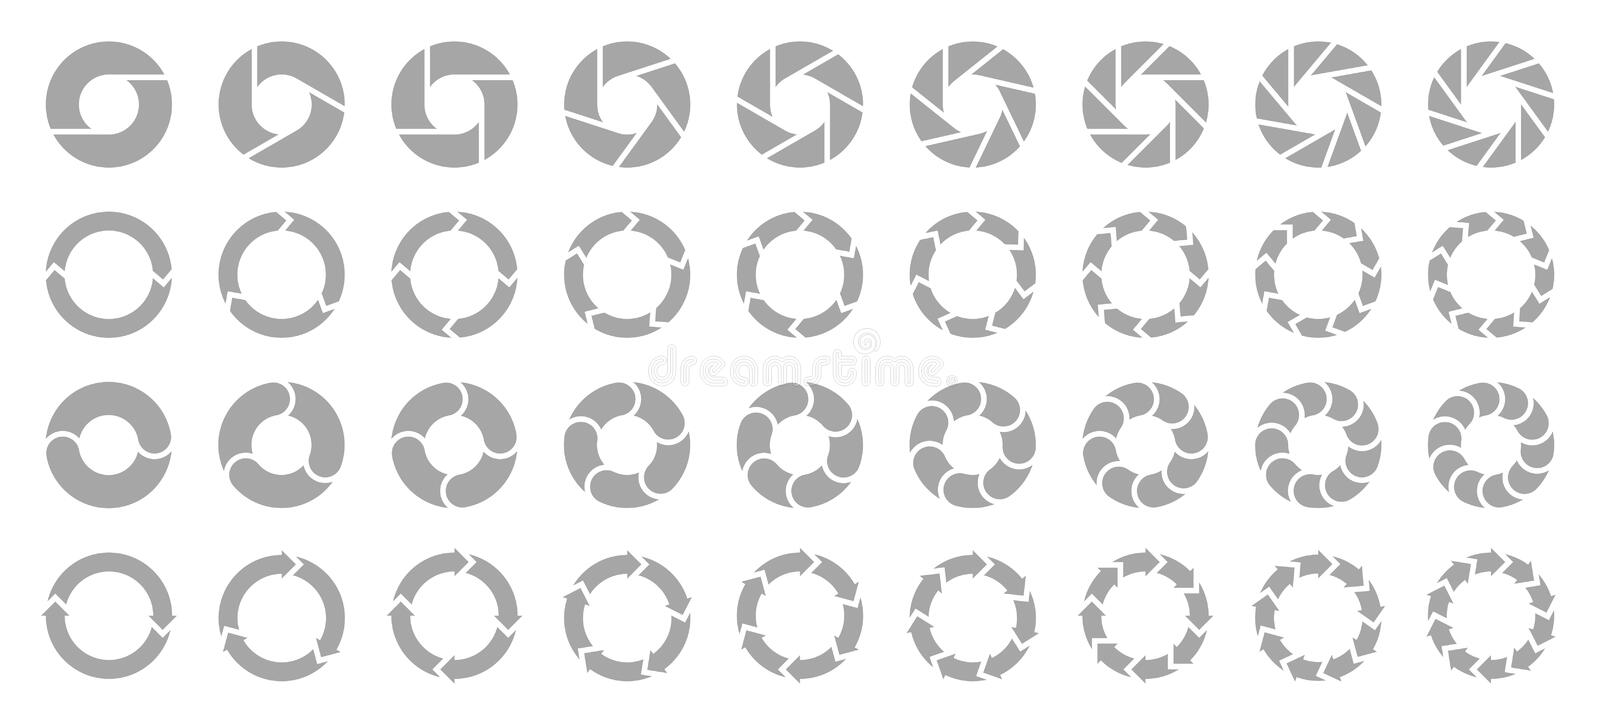 Set Of Different Pie Charts Arrows Gray. Collection Of Thirty Six Different Pie Charts Circles And Arrows With Gray Color stock illustration